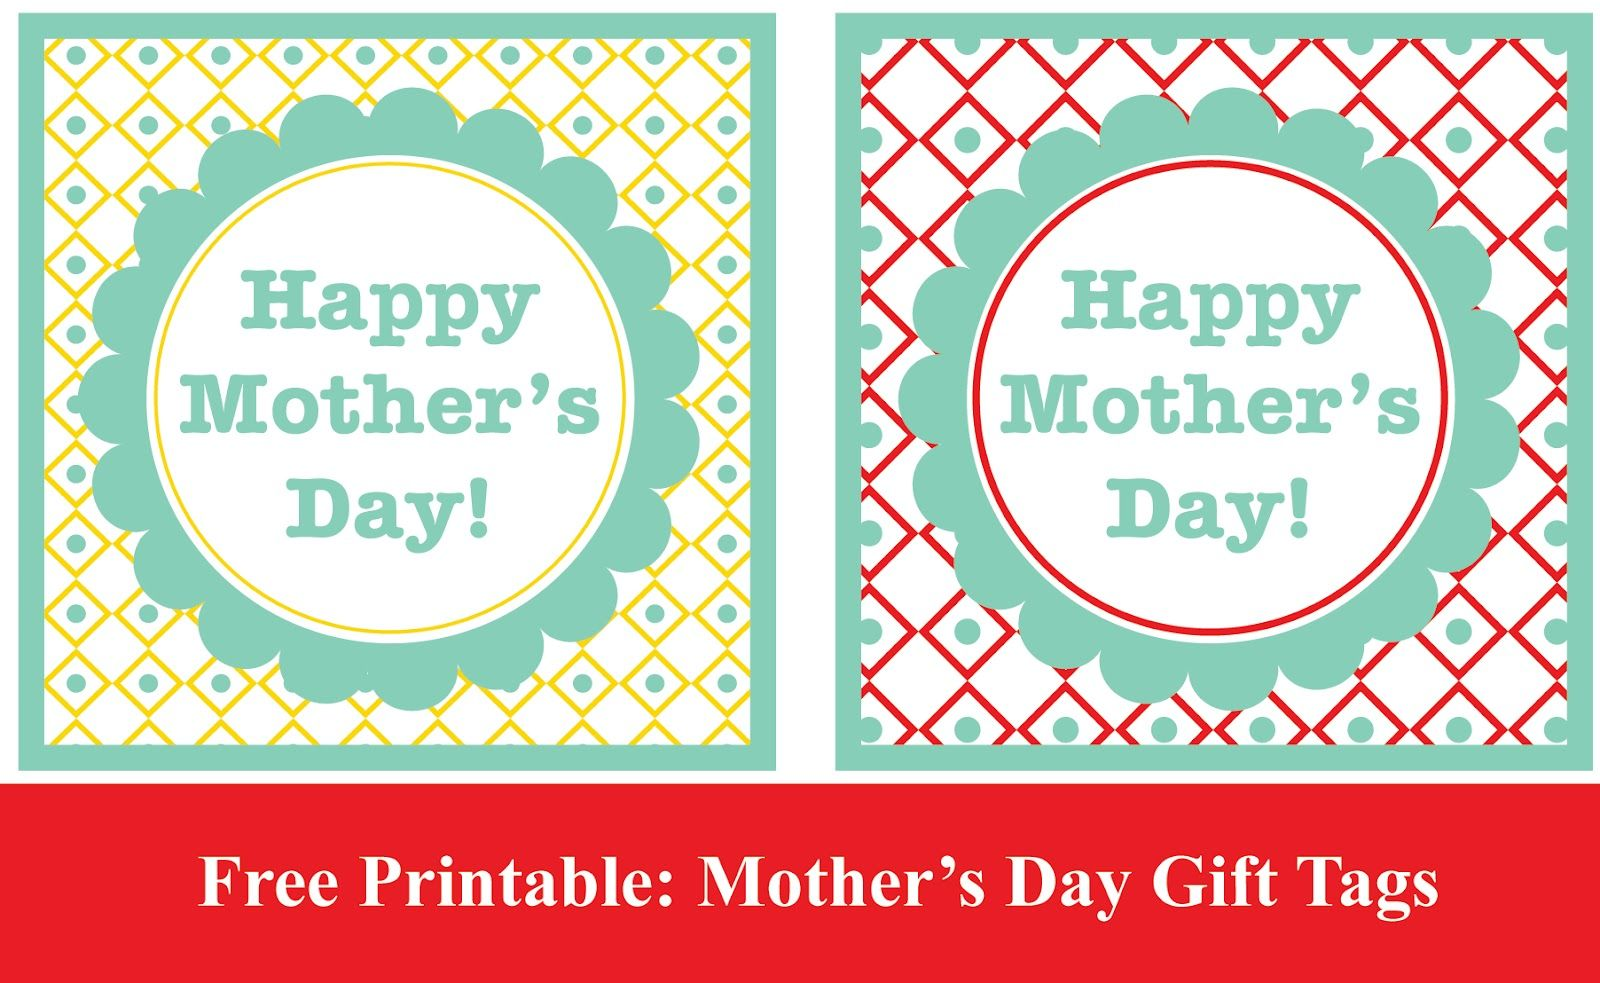 Mother S Day Tags: Free Printable: Mother's Day Gift Tags #thegildedpear